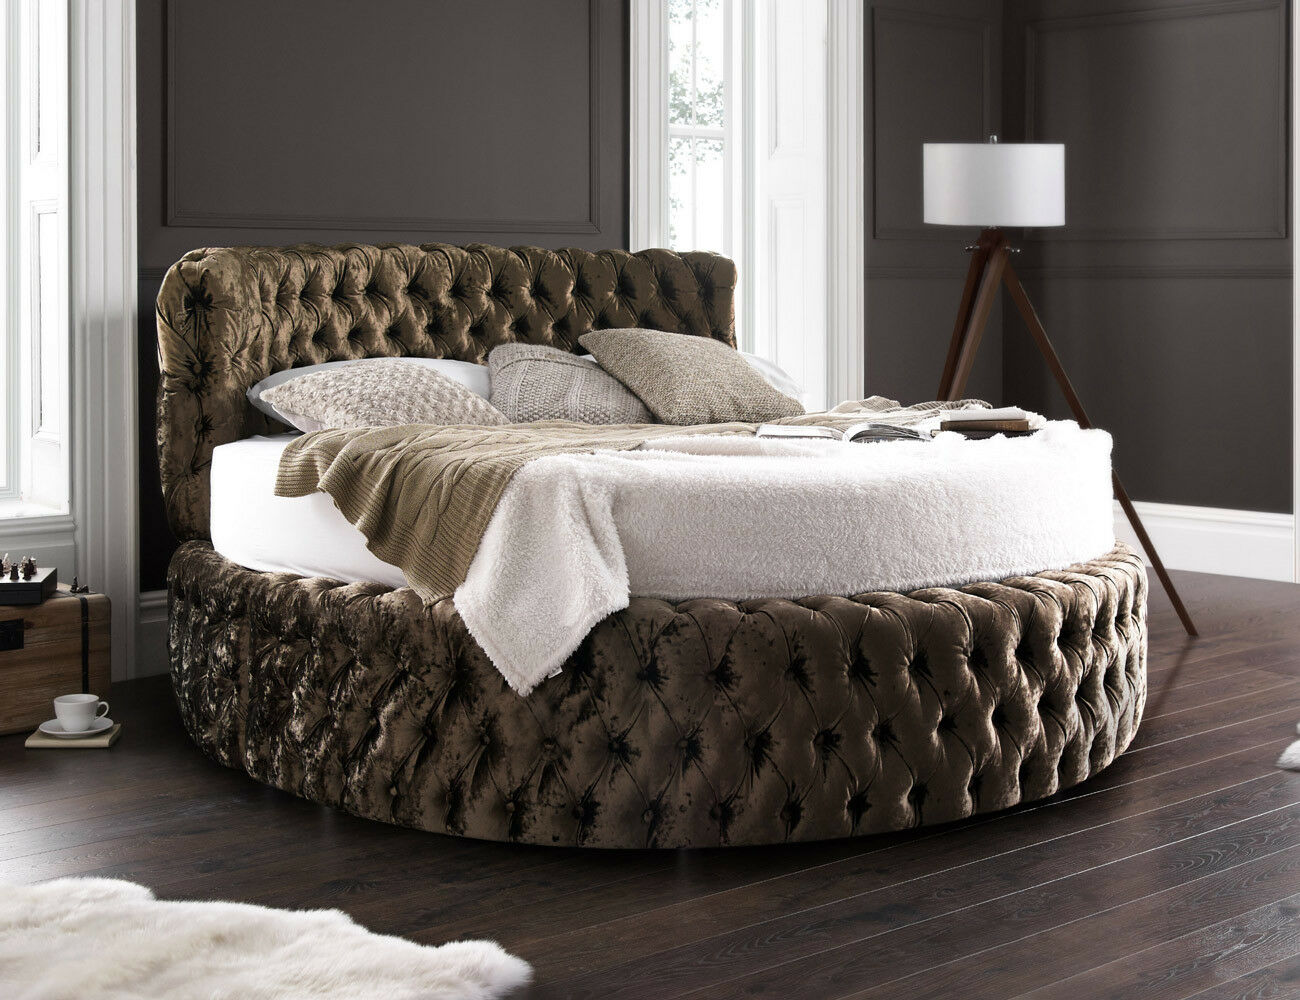 Glamour chesterfield 7ft round bed with headboard 210cm for Beds with mattress and headboard